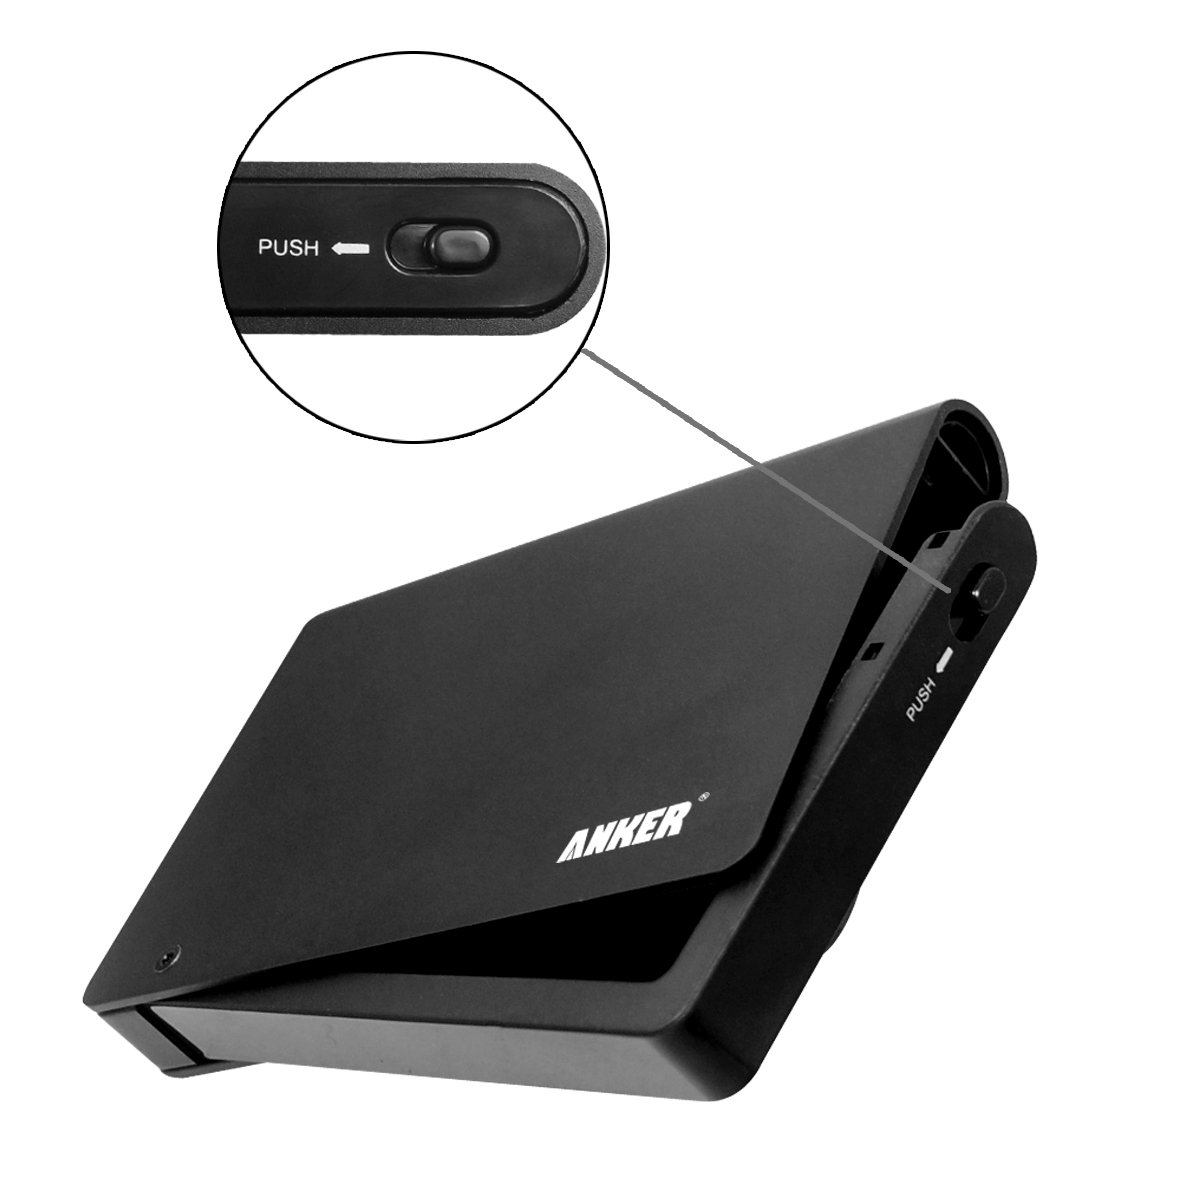 Anker® Uspeed USB 3.0 & eSATA Hard Drive Enclosure for 2.5-Inch ...